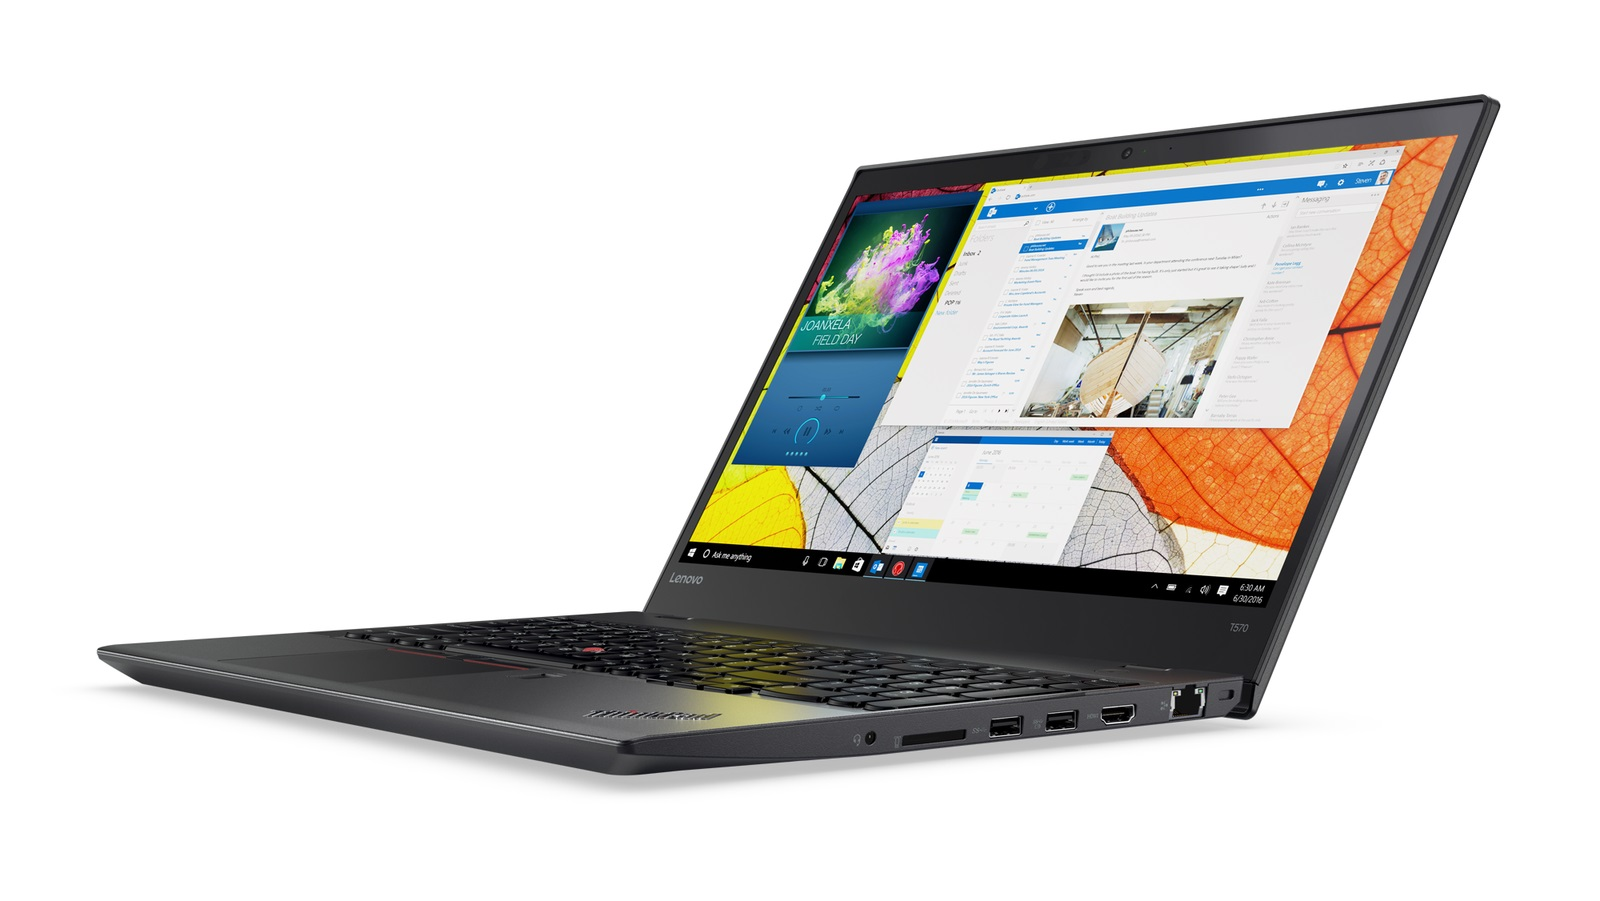 "Lenovo ThinkPad T570 i5-7300U/8GB/256GB SSD/HD Graphics 620/15,6"" FHD IPS/4G/Win10PRO/black"